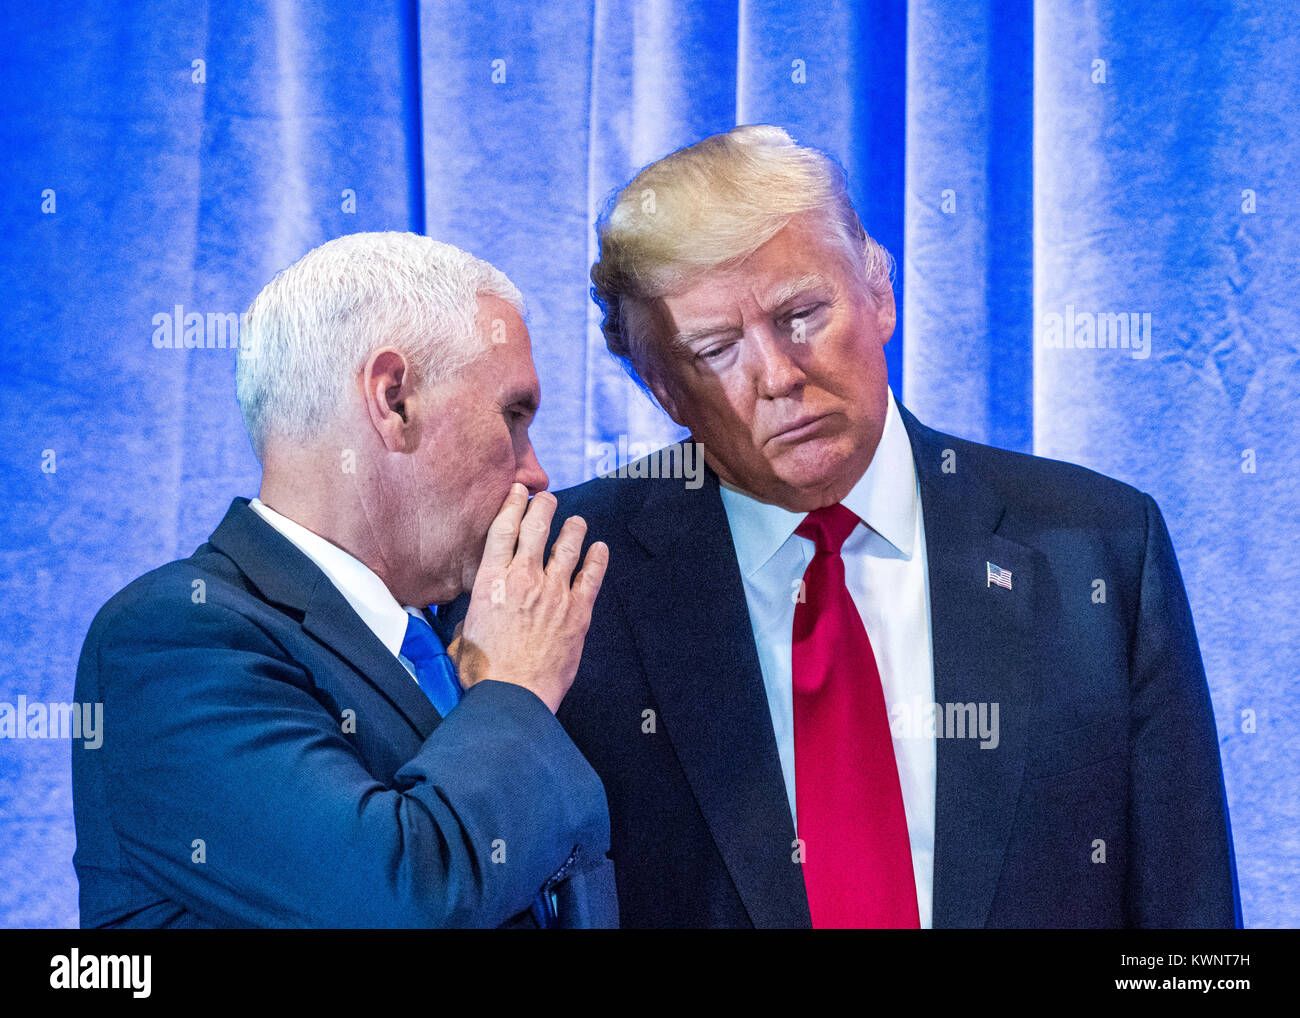 New York, USA, 11 January 2017.  US President-elect Donald Trump (R) listens to his Vice-President-elect Mike Pence before a news conference in New Yo Stock Photo